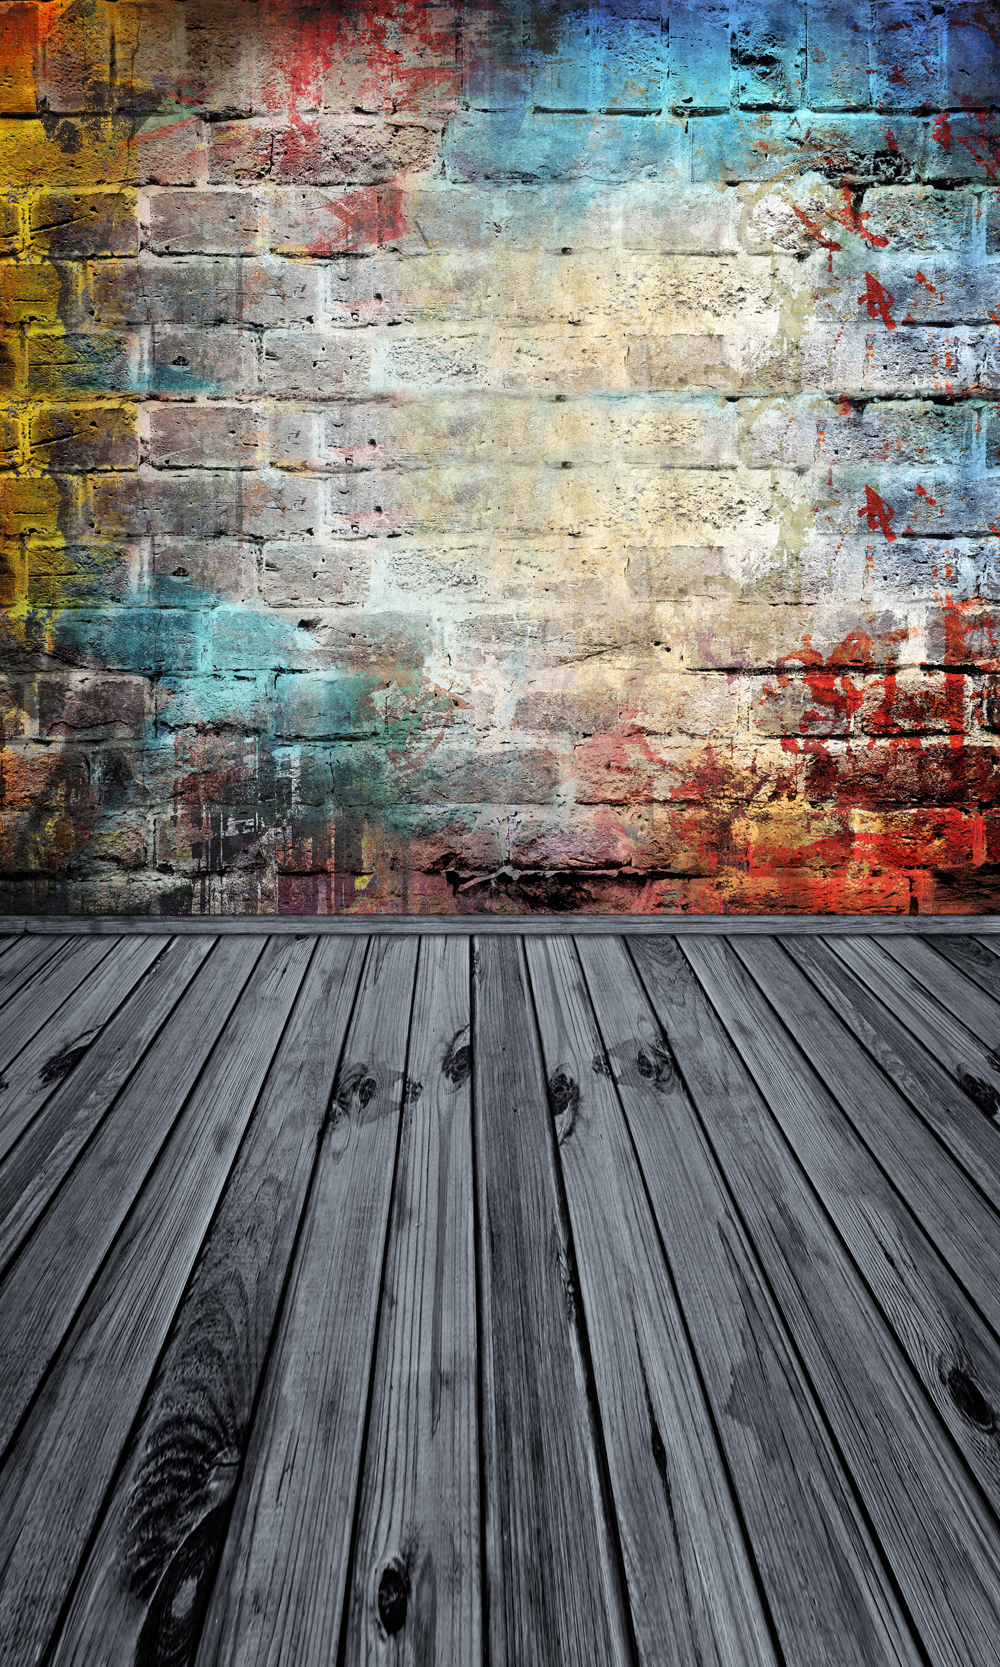 HUAYI 3x6m seamless brick wall wood floor Backdrop photography backdrops photo background vinyl backdrop brick paper XT-6400 mehofoto christmas tree backdrop fireplace photo background white brick wall photography backdrops for wood floor props 914